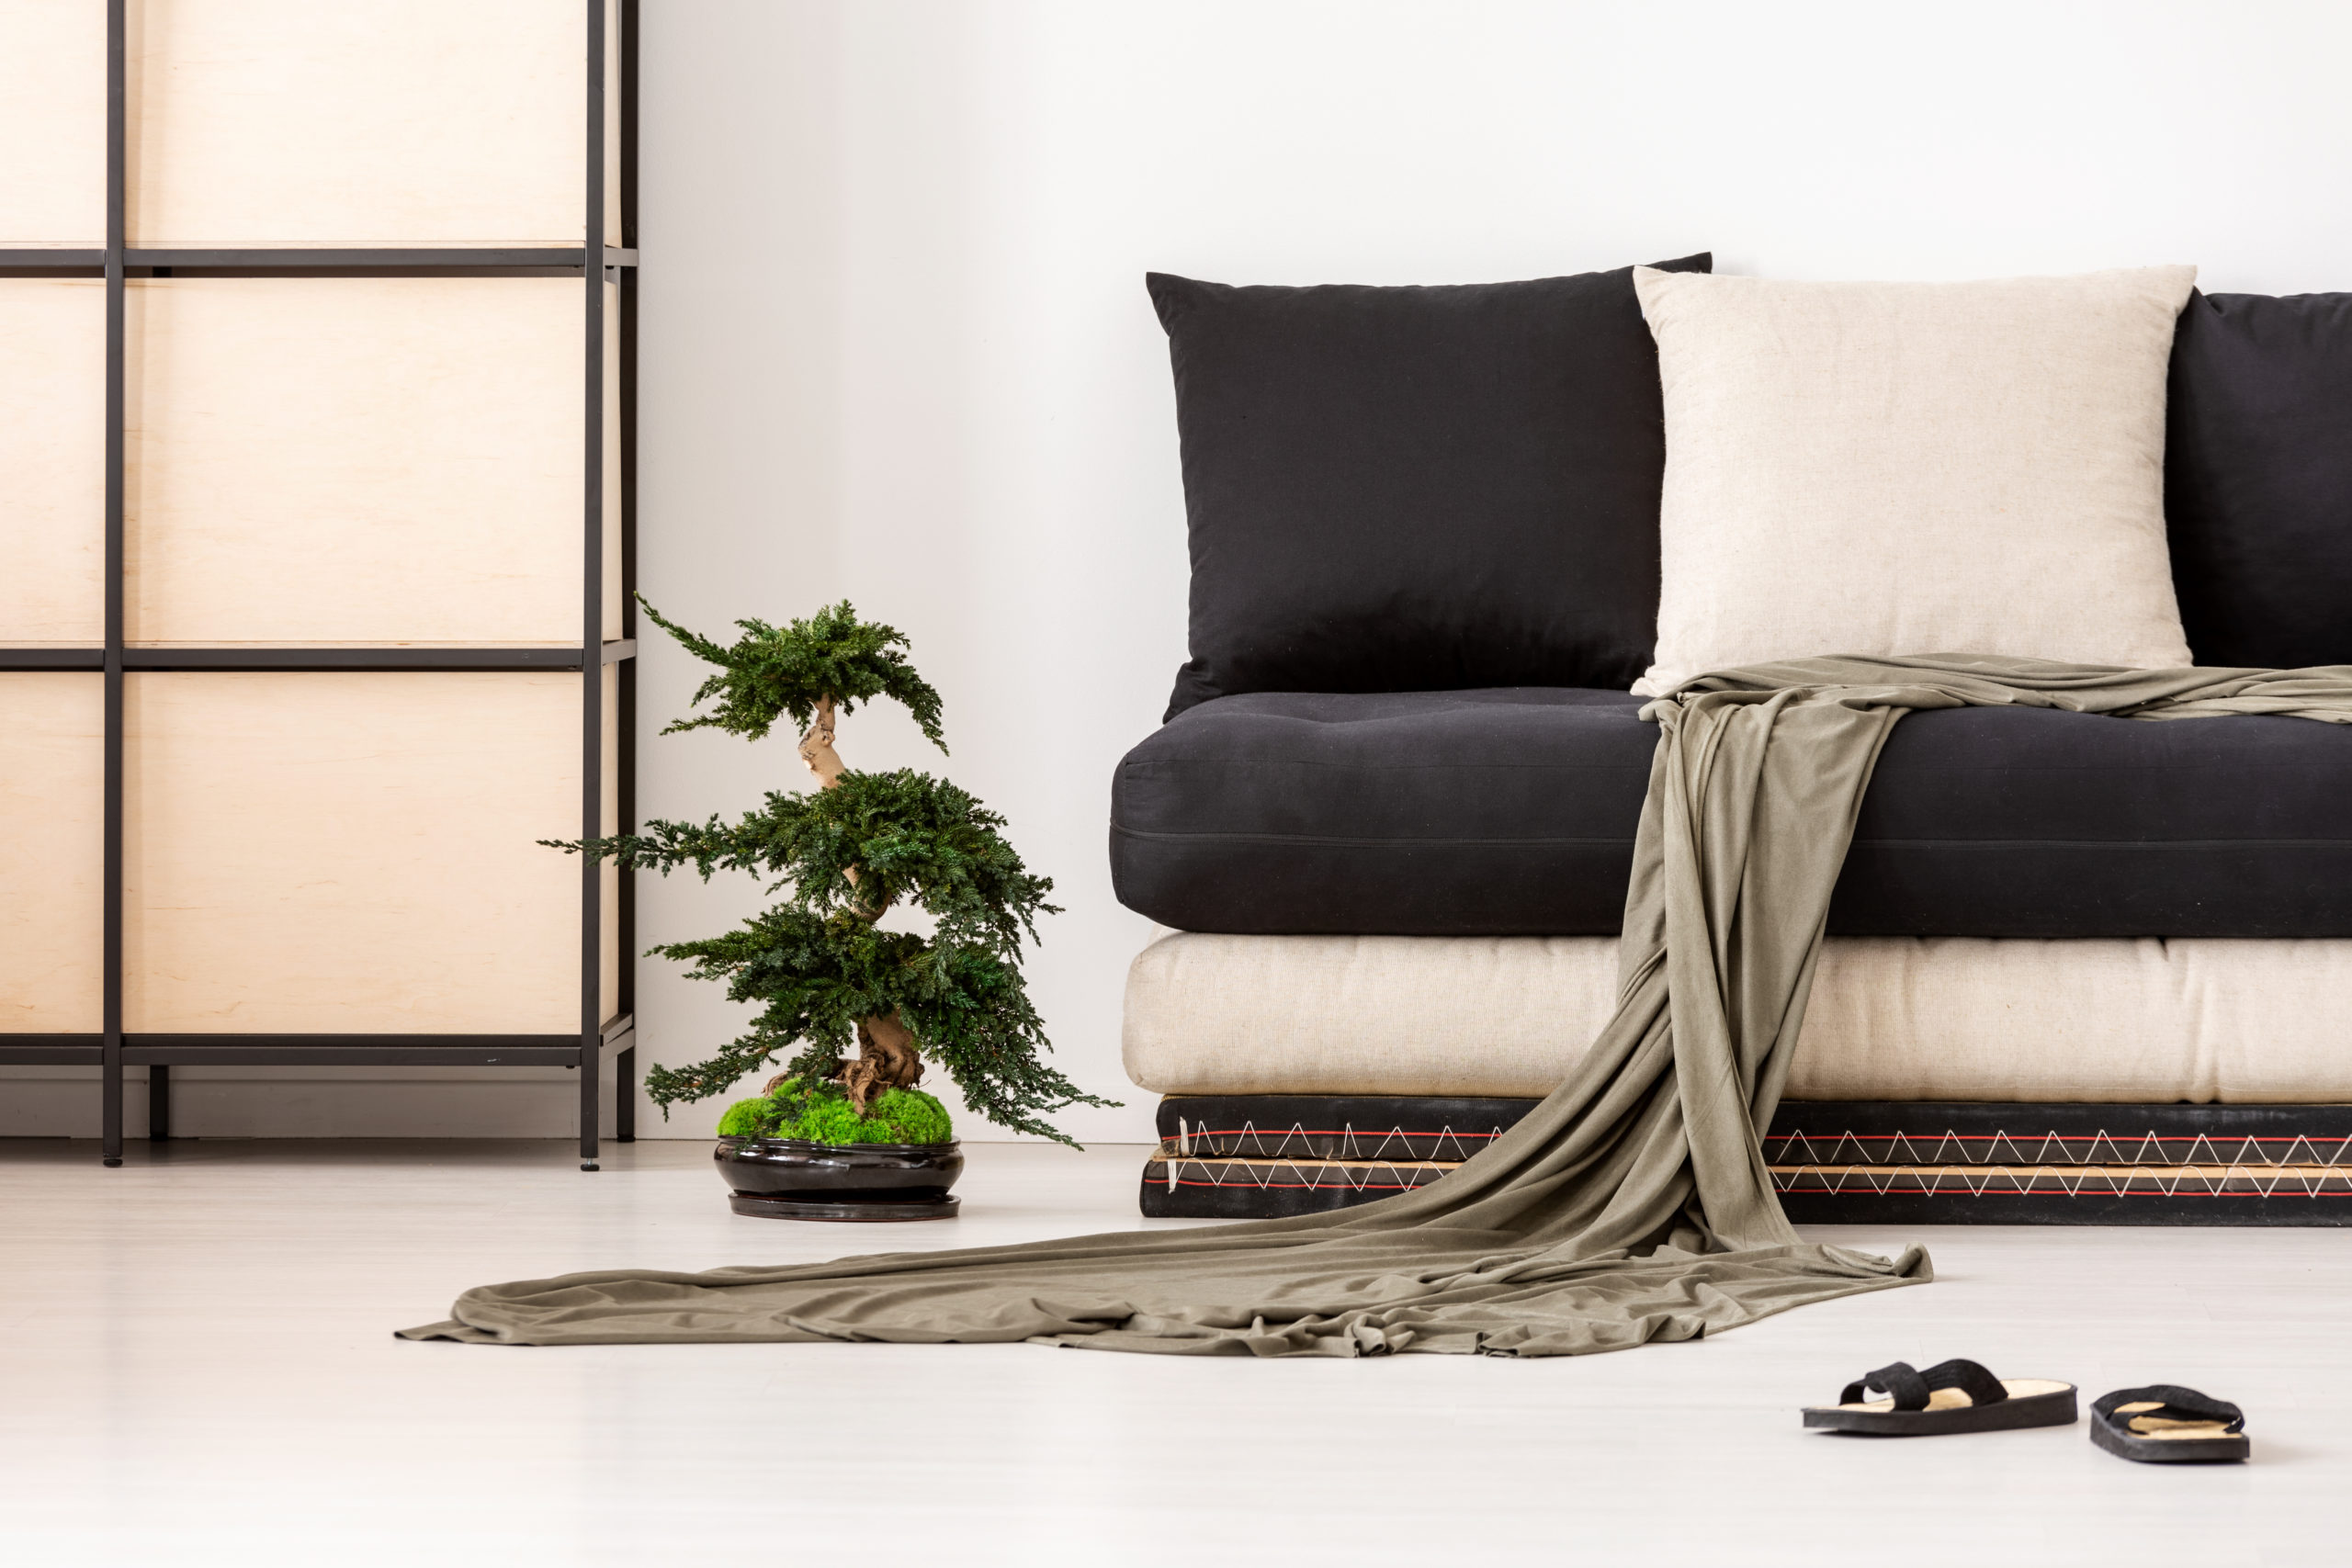 Blanket and pillows on black couch in asian living room interior with shoes and bonsai. Real photo